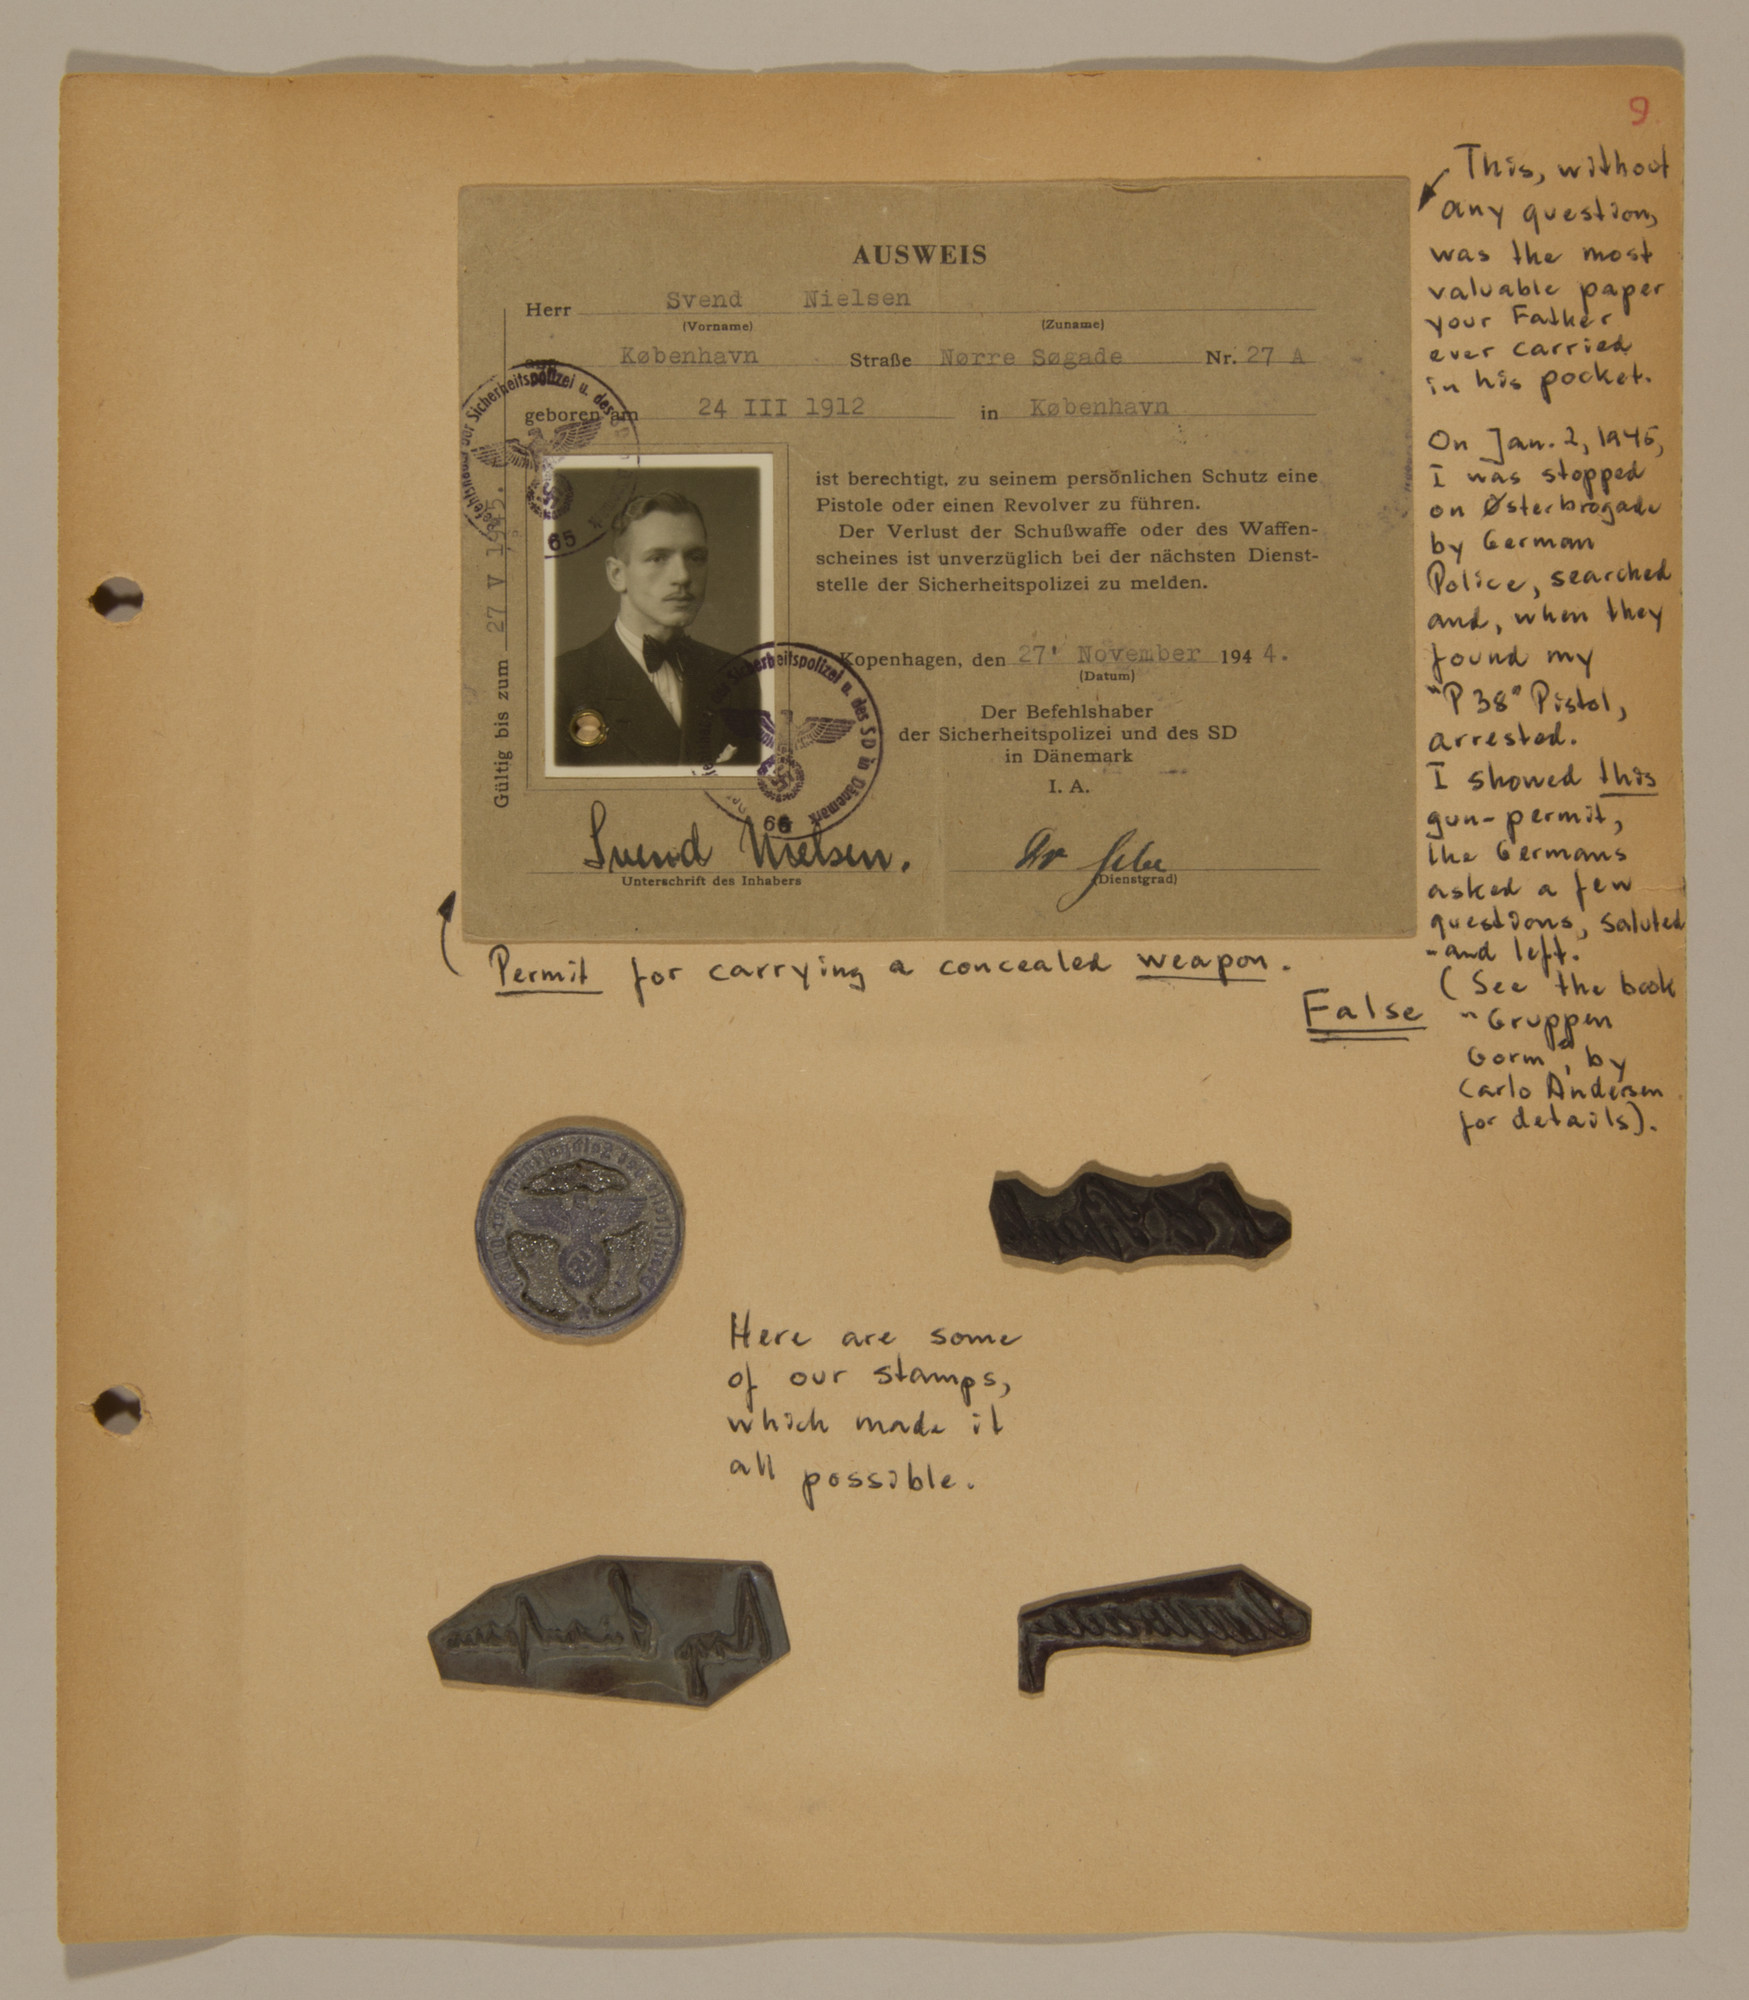 Page from volume three of a set of scrapbooks compiled by Bjorn Sibbern, a Danish policeman and resistance member, documenting the German occupation of Denmark.  This page contains Bjorn Sibbern's (aka Svend Nieslsen's) false permit for carrying a concealed weapon and his forgery stamps.